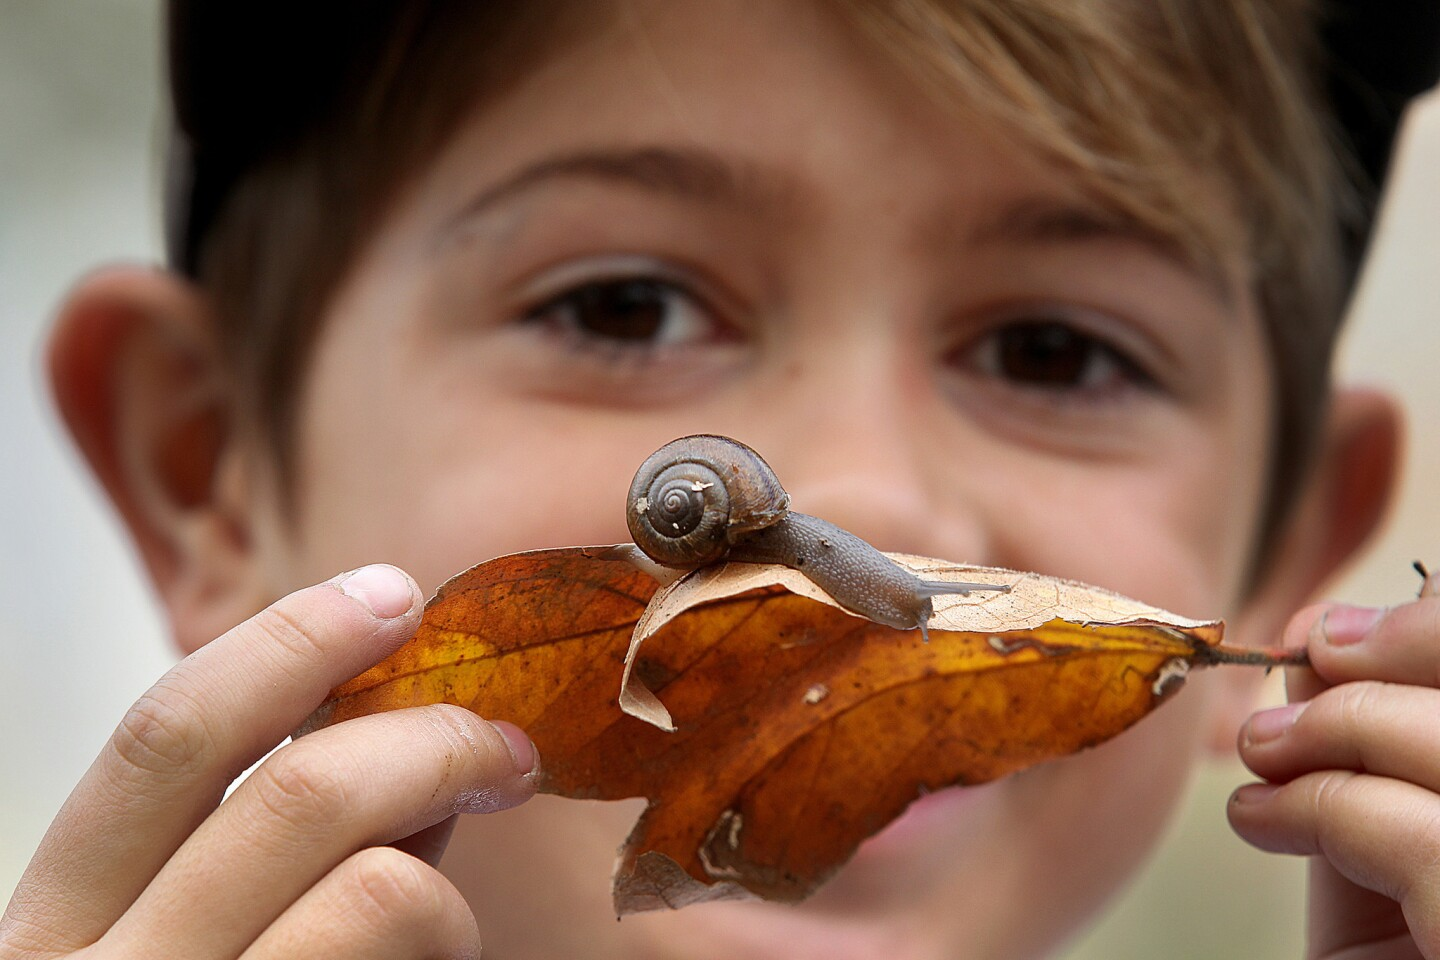 Logan Joanis, 8, with a snail he found in Eaton Canyon, just north of Pasadena. He and other citizen scientists took part in a project organized by the Natural History Museum of Los Angeles County to catalog the diversity of land snails and slugs in Southern California.